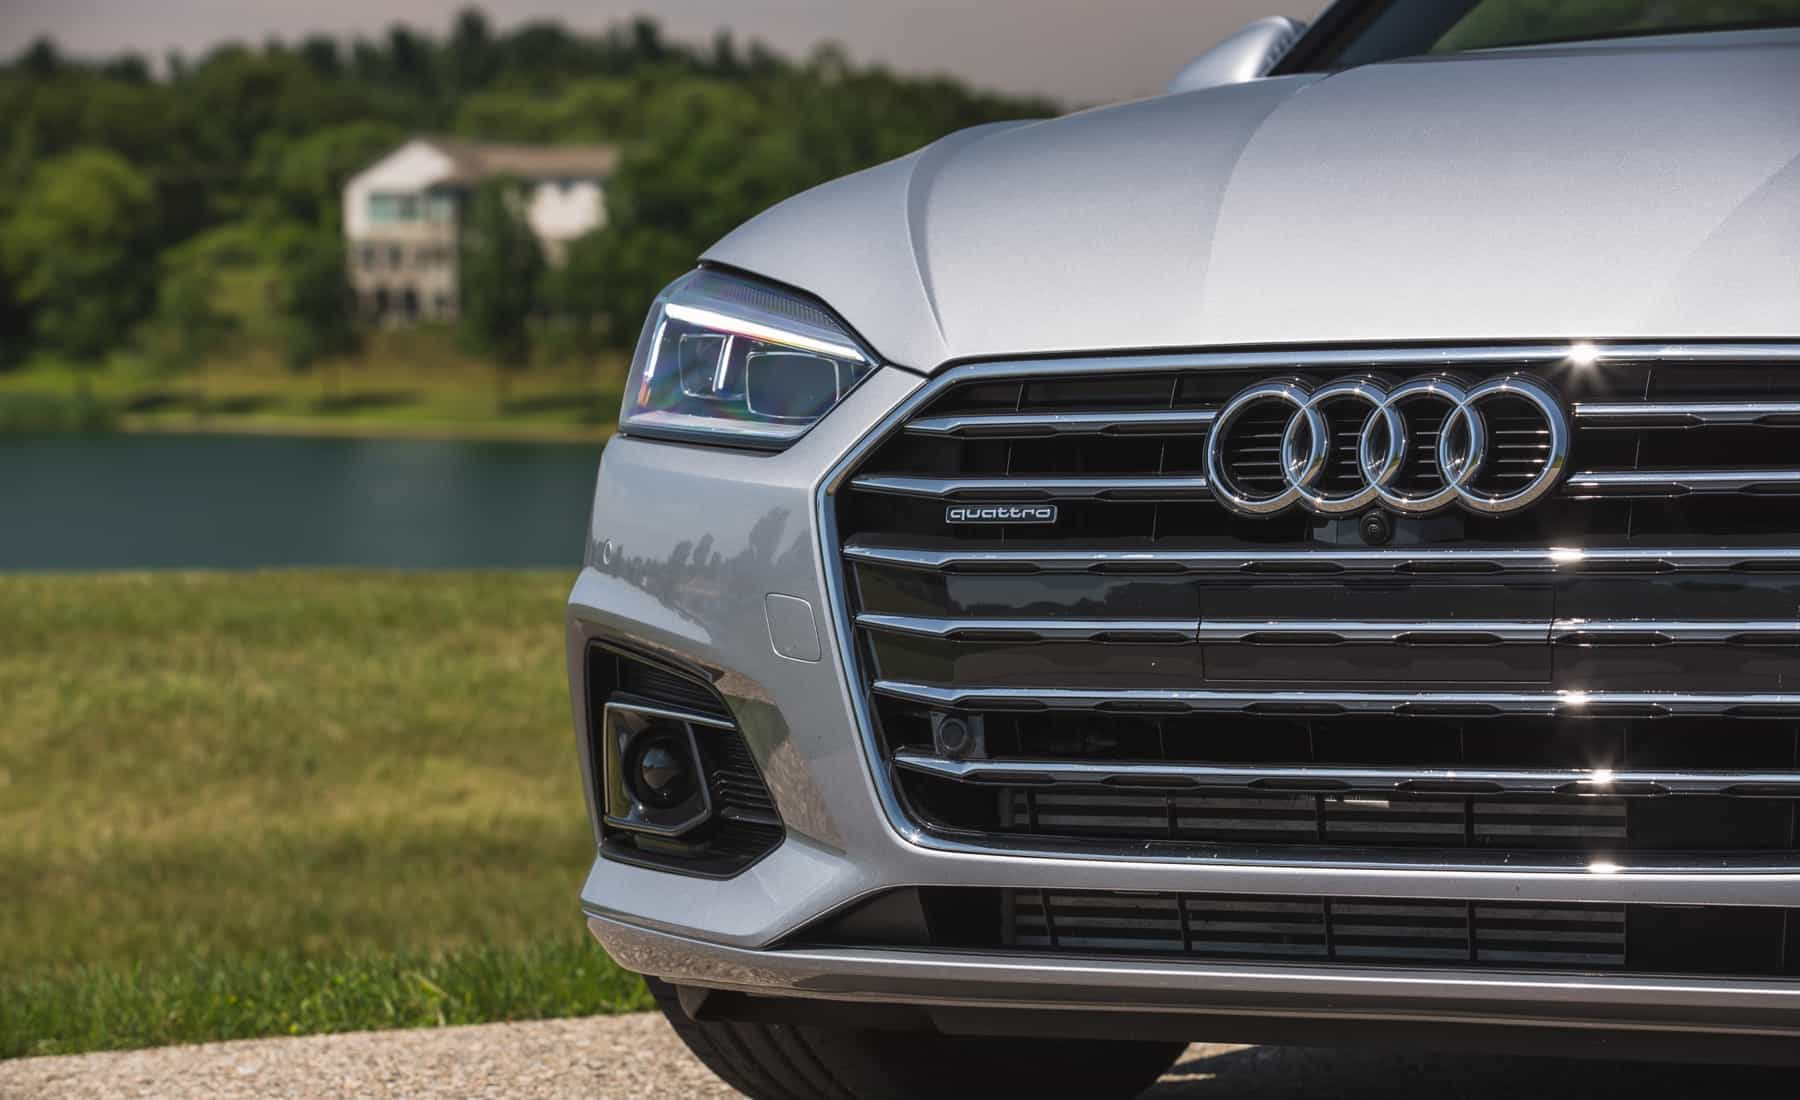 2018 Audi A5 Cabriolet Exterior View Grille And Badge (Photo 10 of 45)